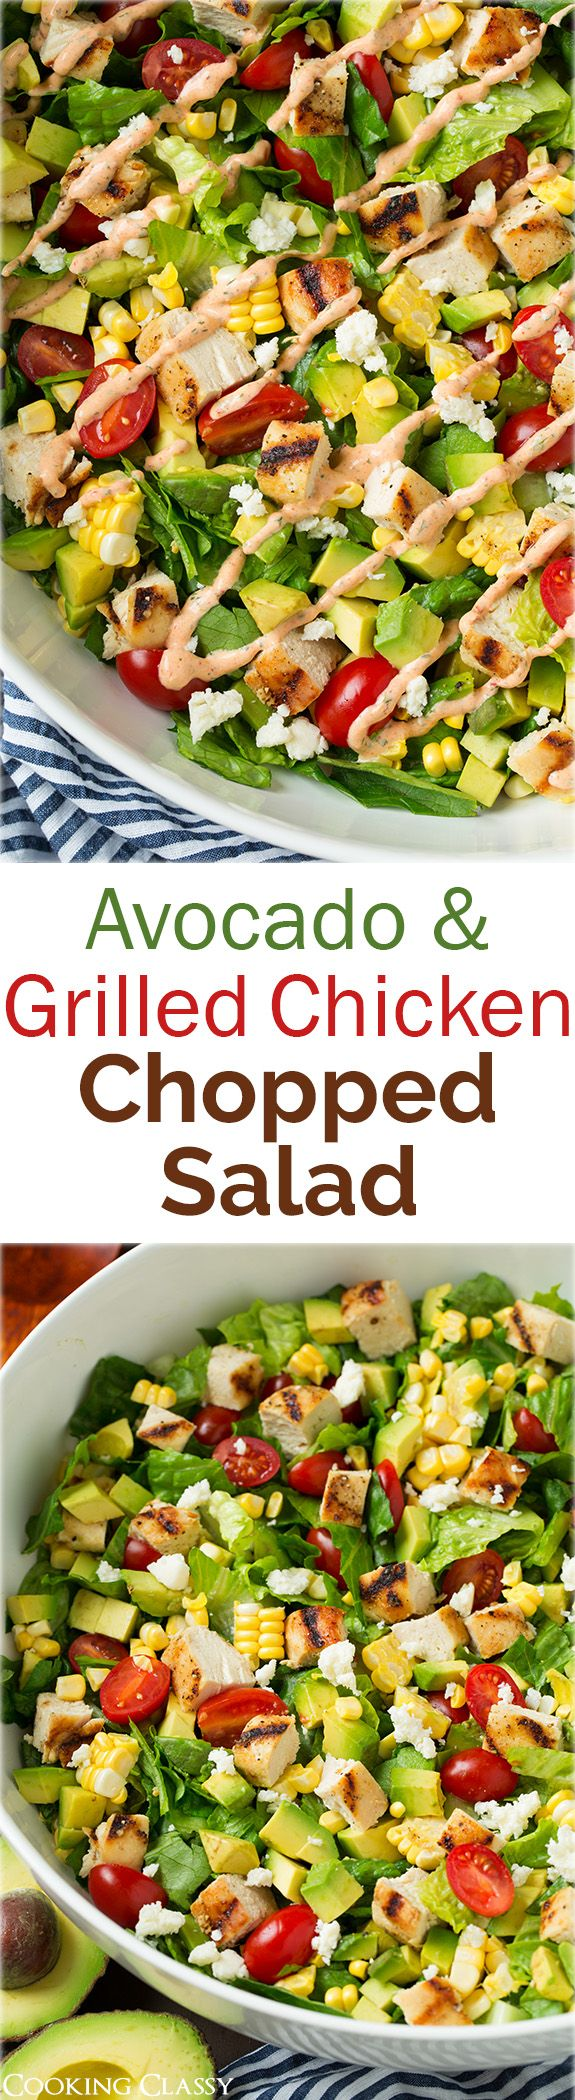 avocado and grilled chicken chopped salad.